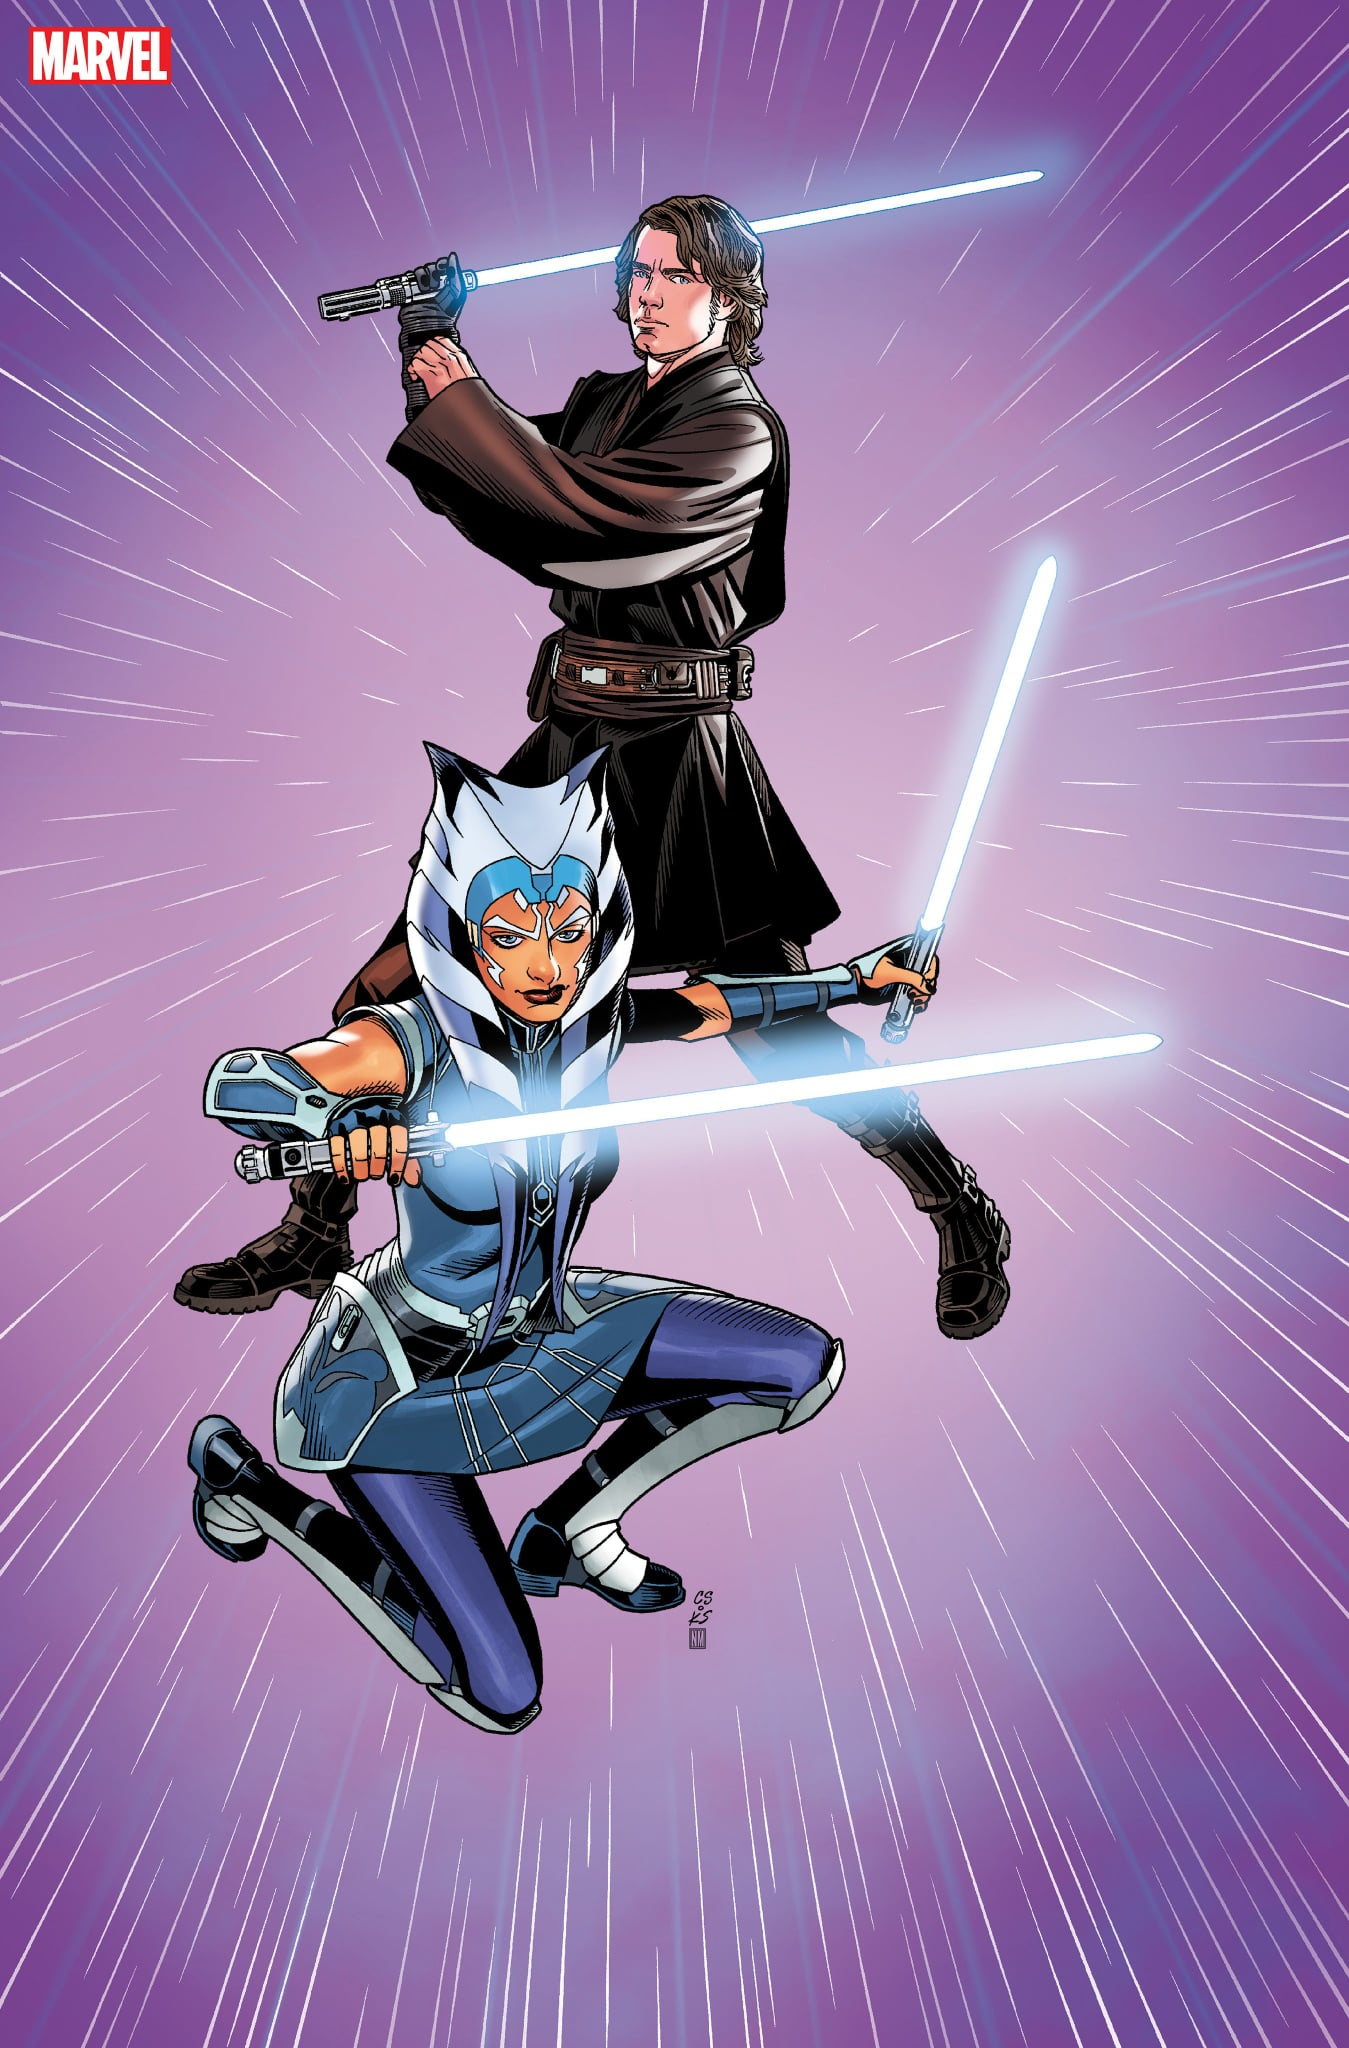 Star Wars: War of the Bounty Hunters 5 - Sprouse Variant